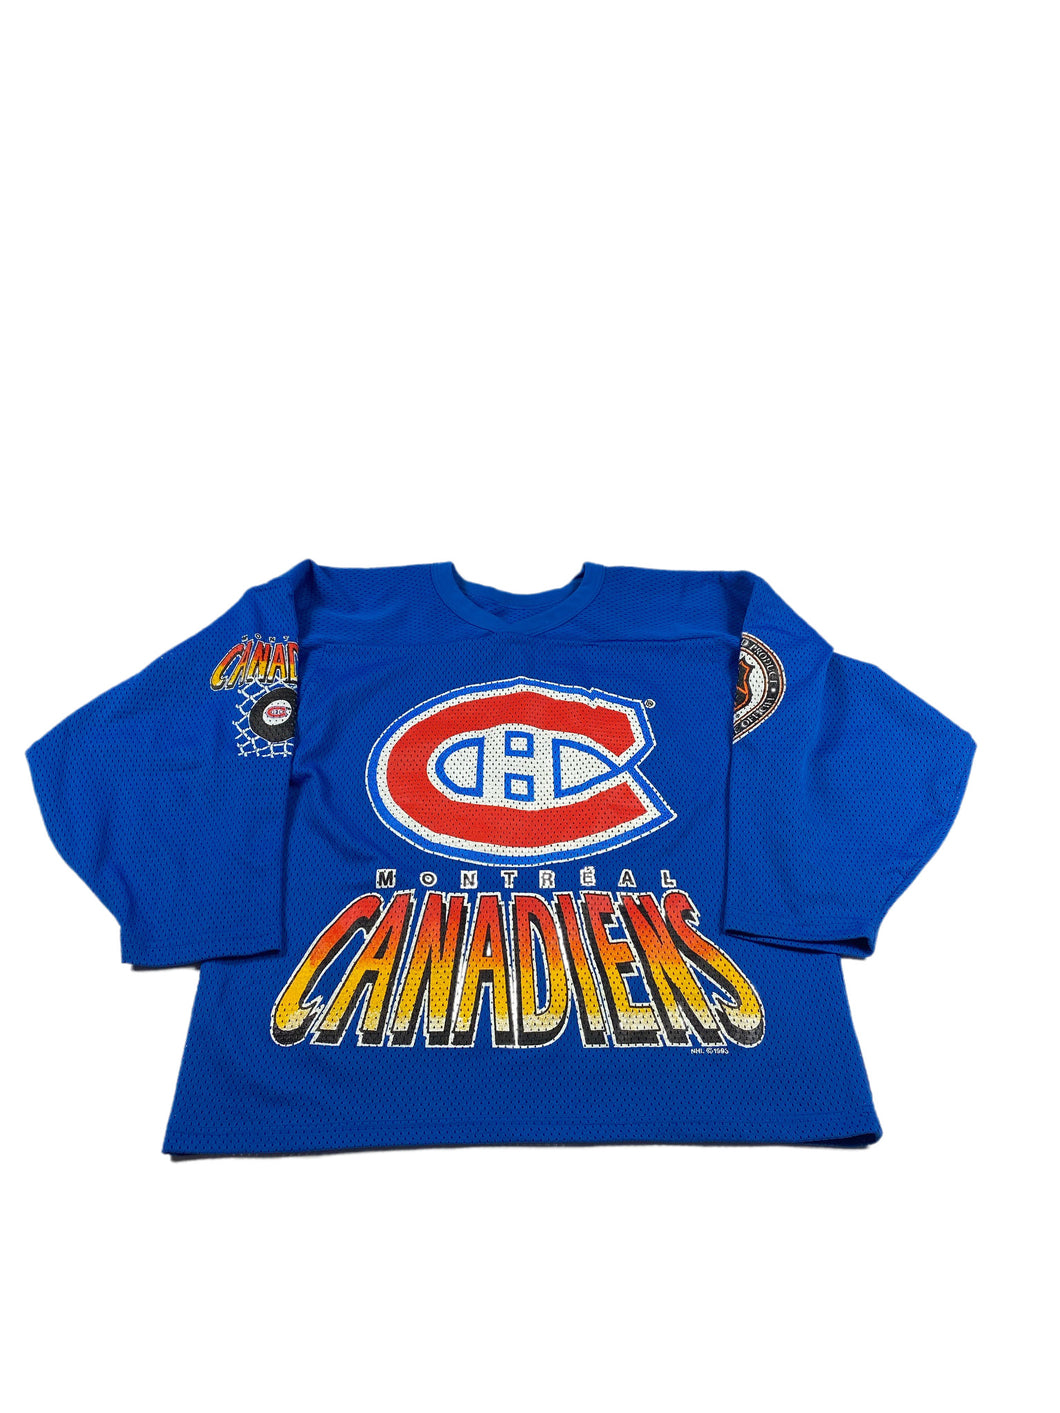 Montreal Canadians Hockey Jersey